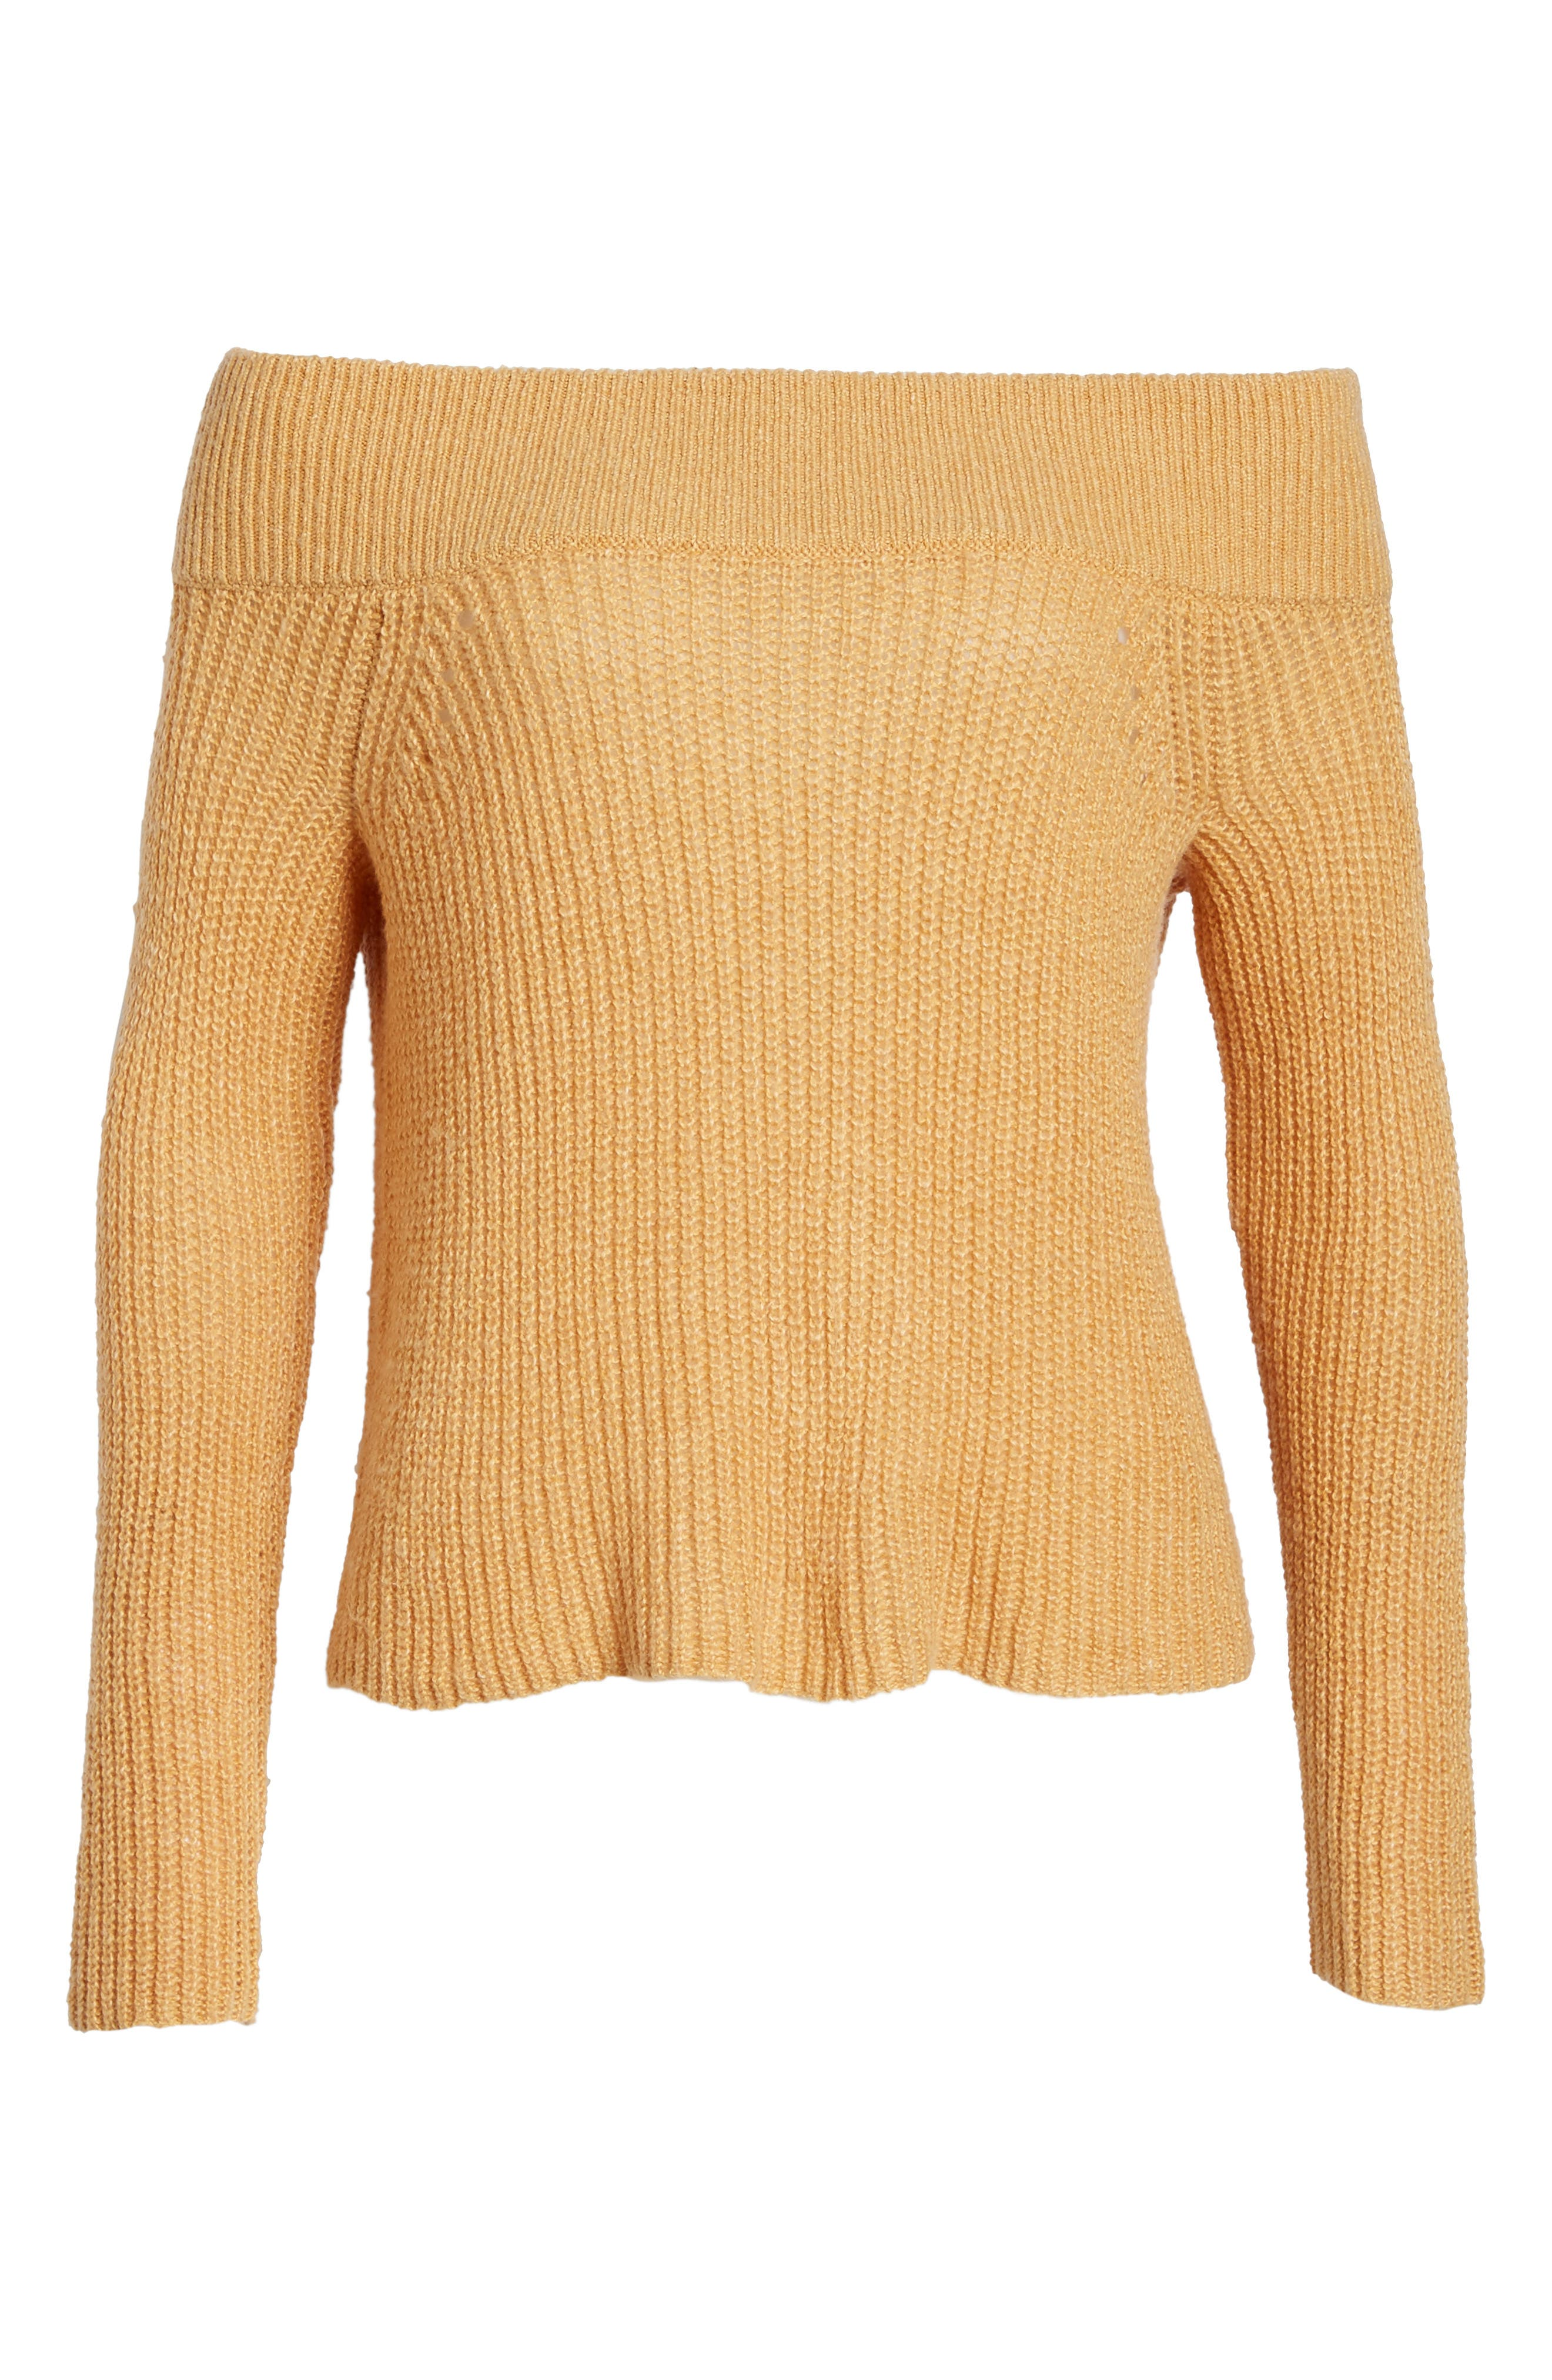 Lofty Off the Shoulder Pullover,                             Alternate thumbnail 6, color,                             235